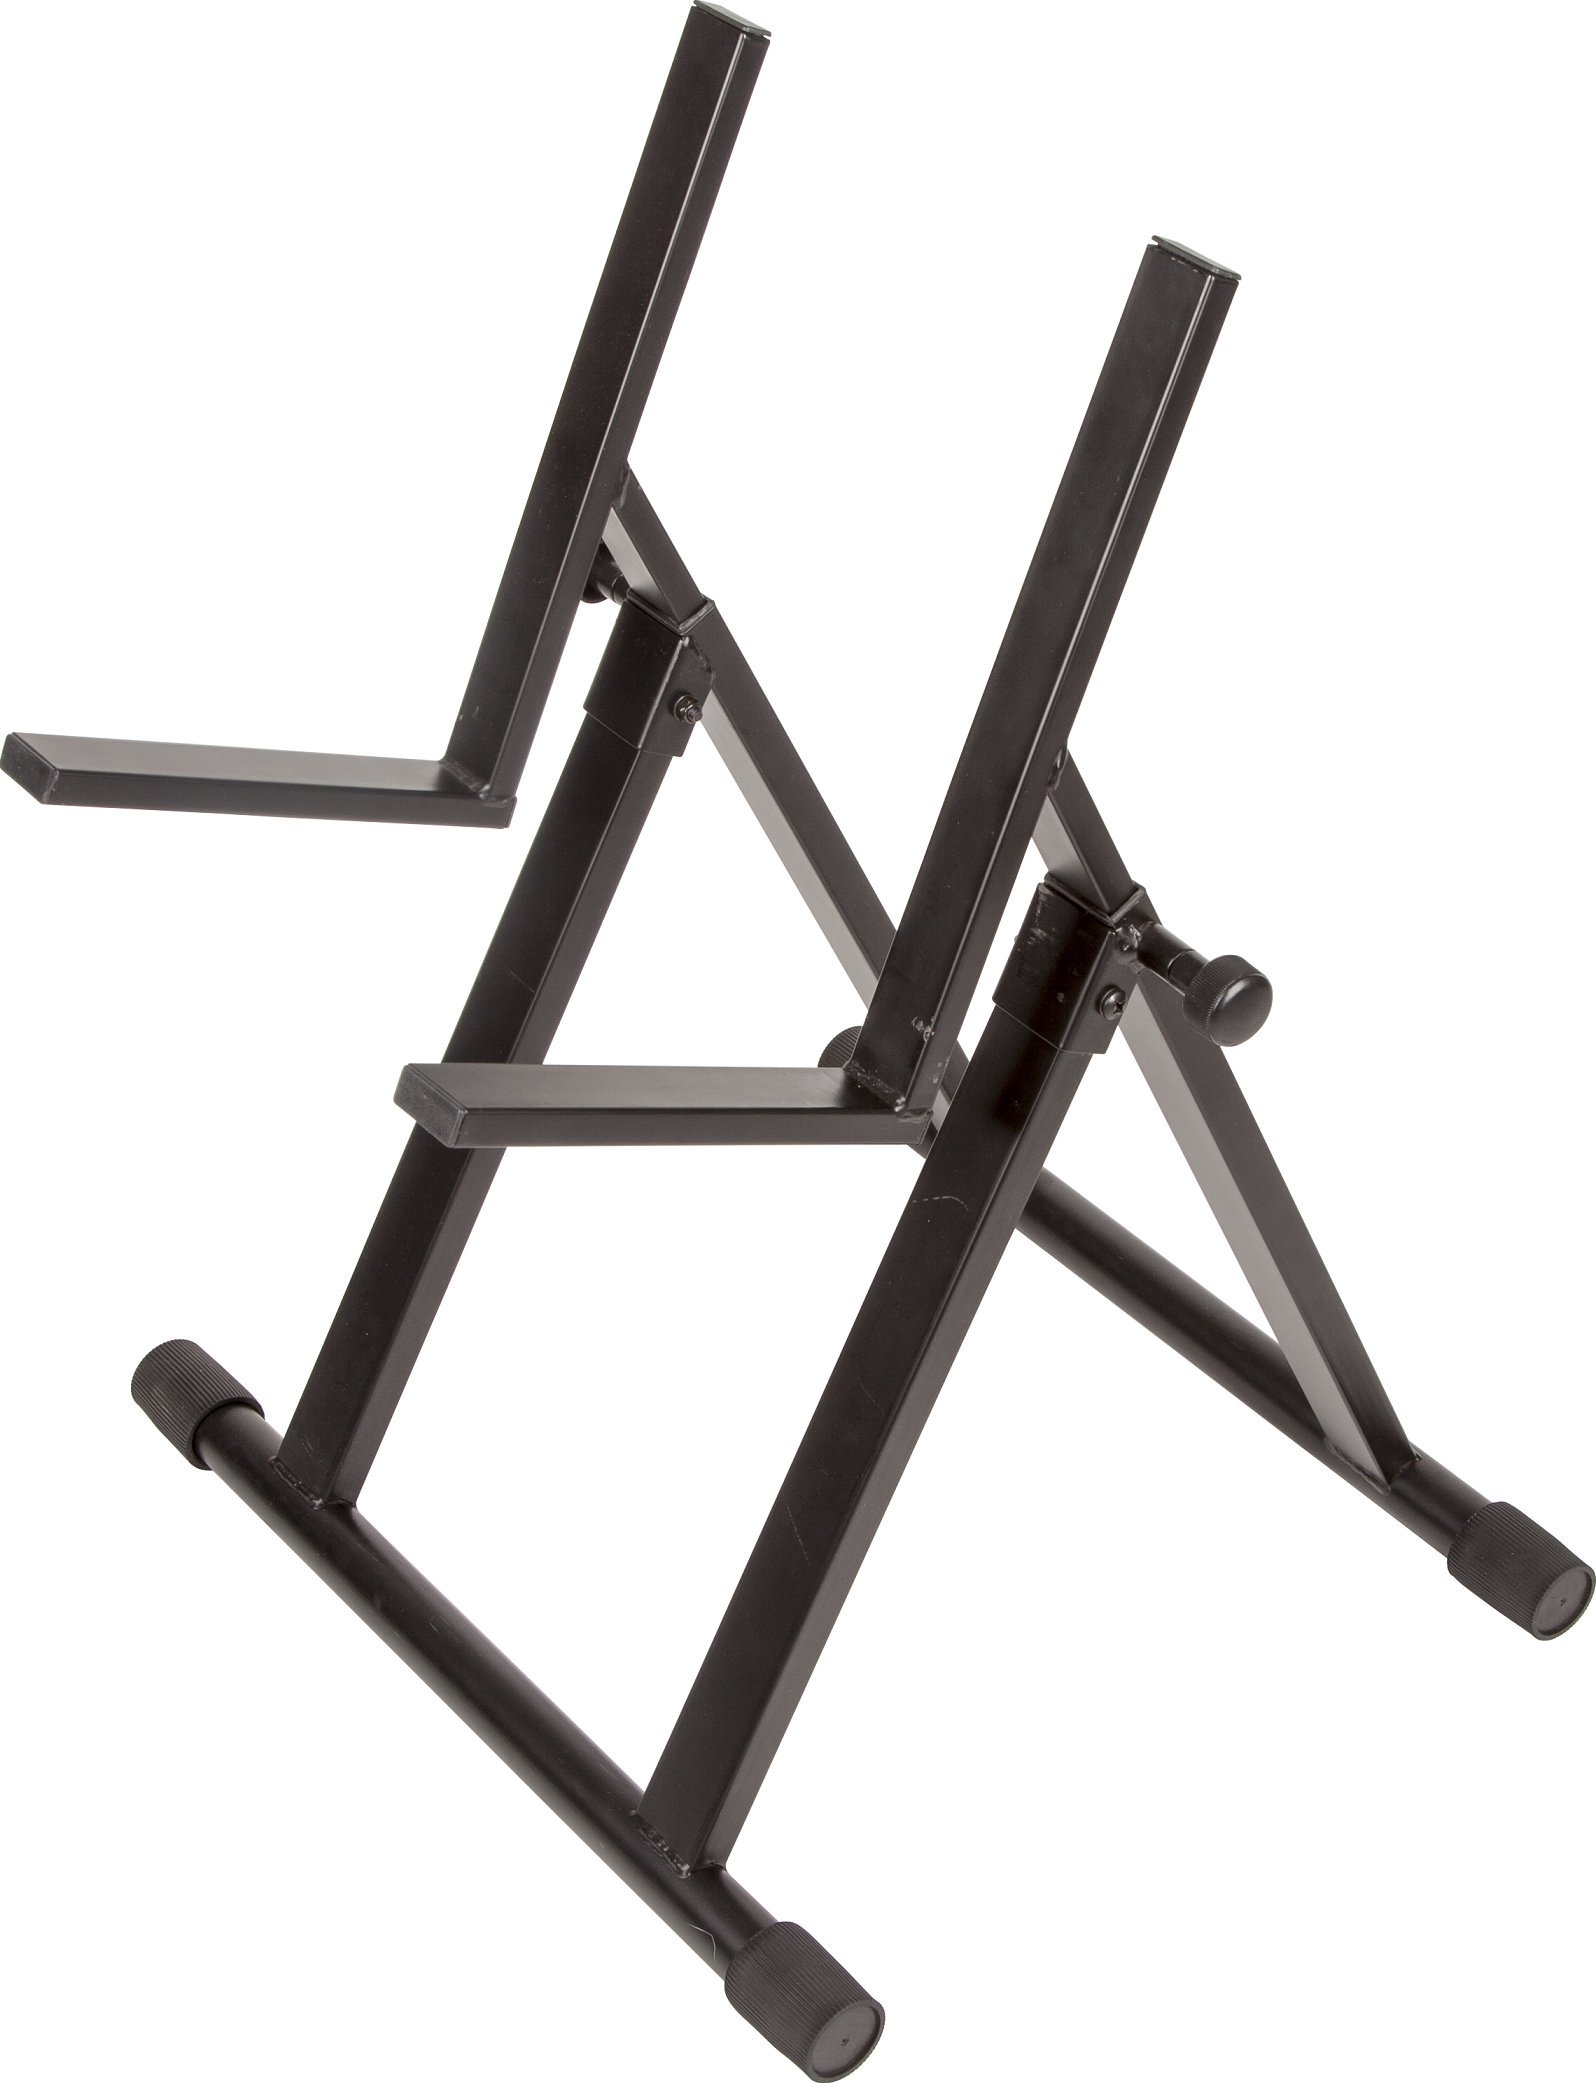 Fender Amplifier Stand, Large